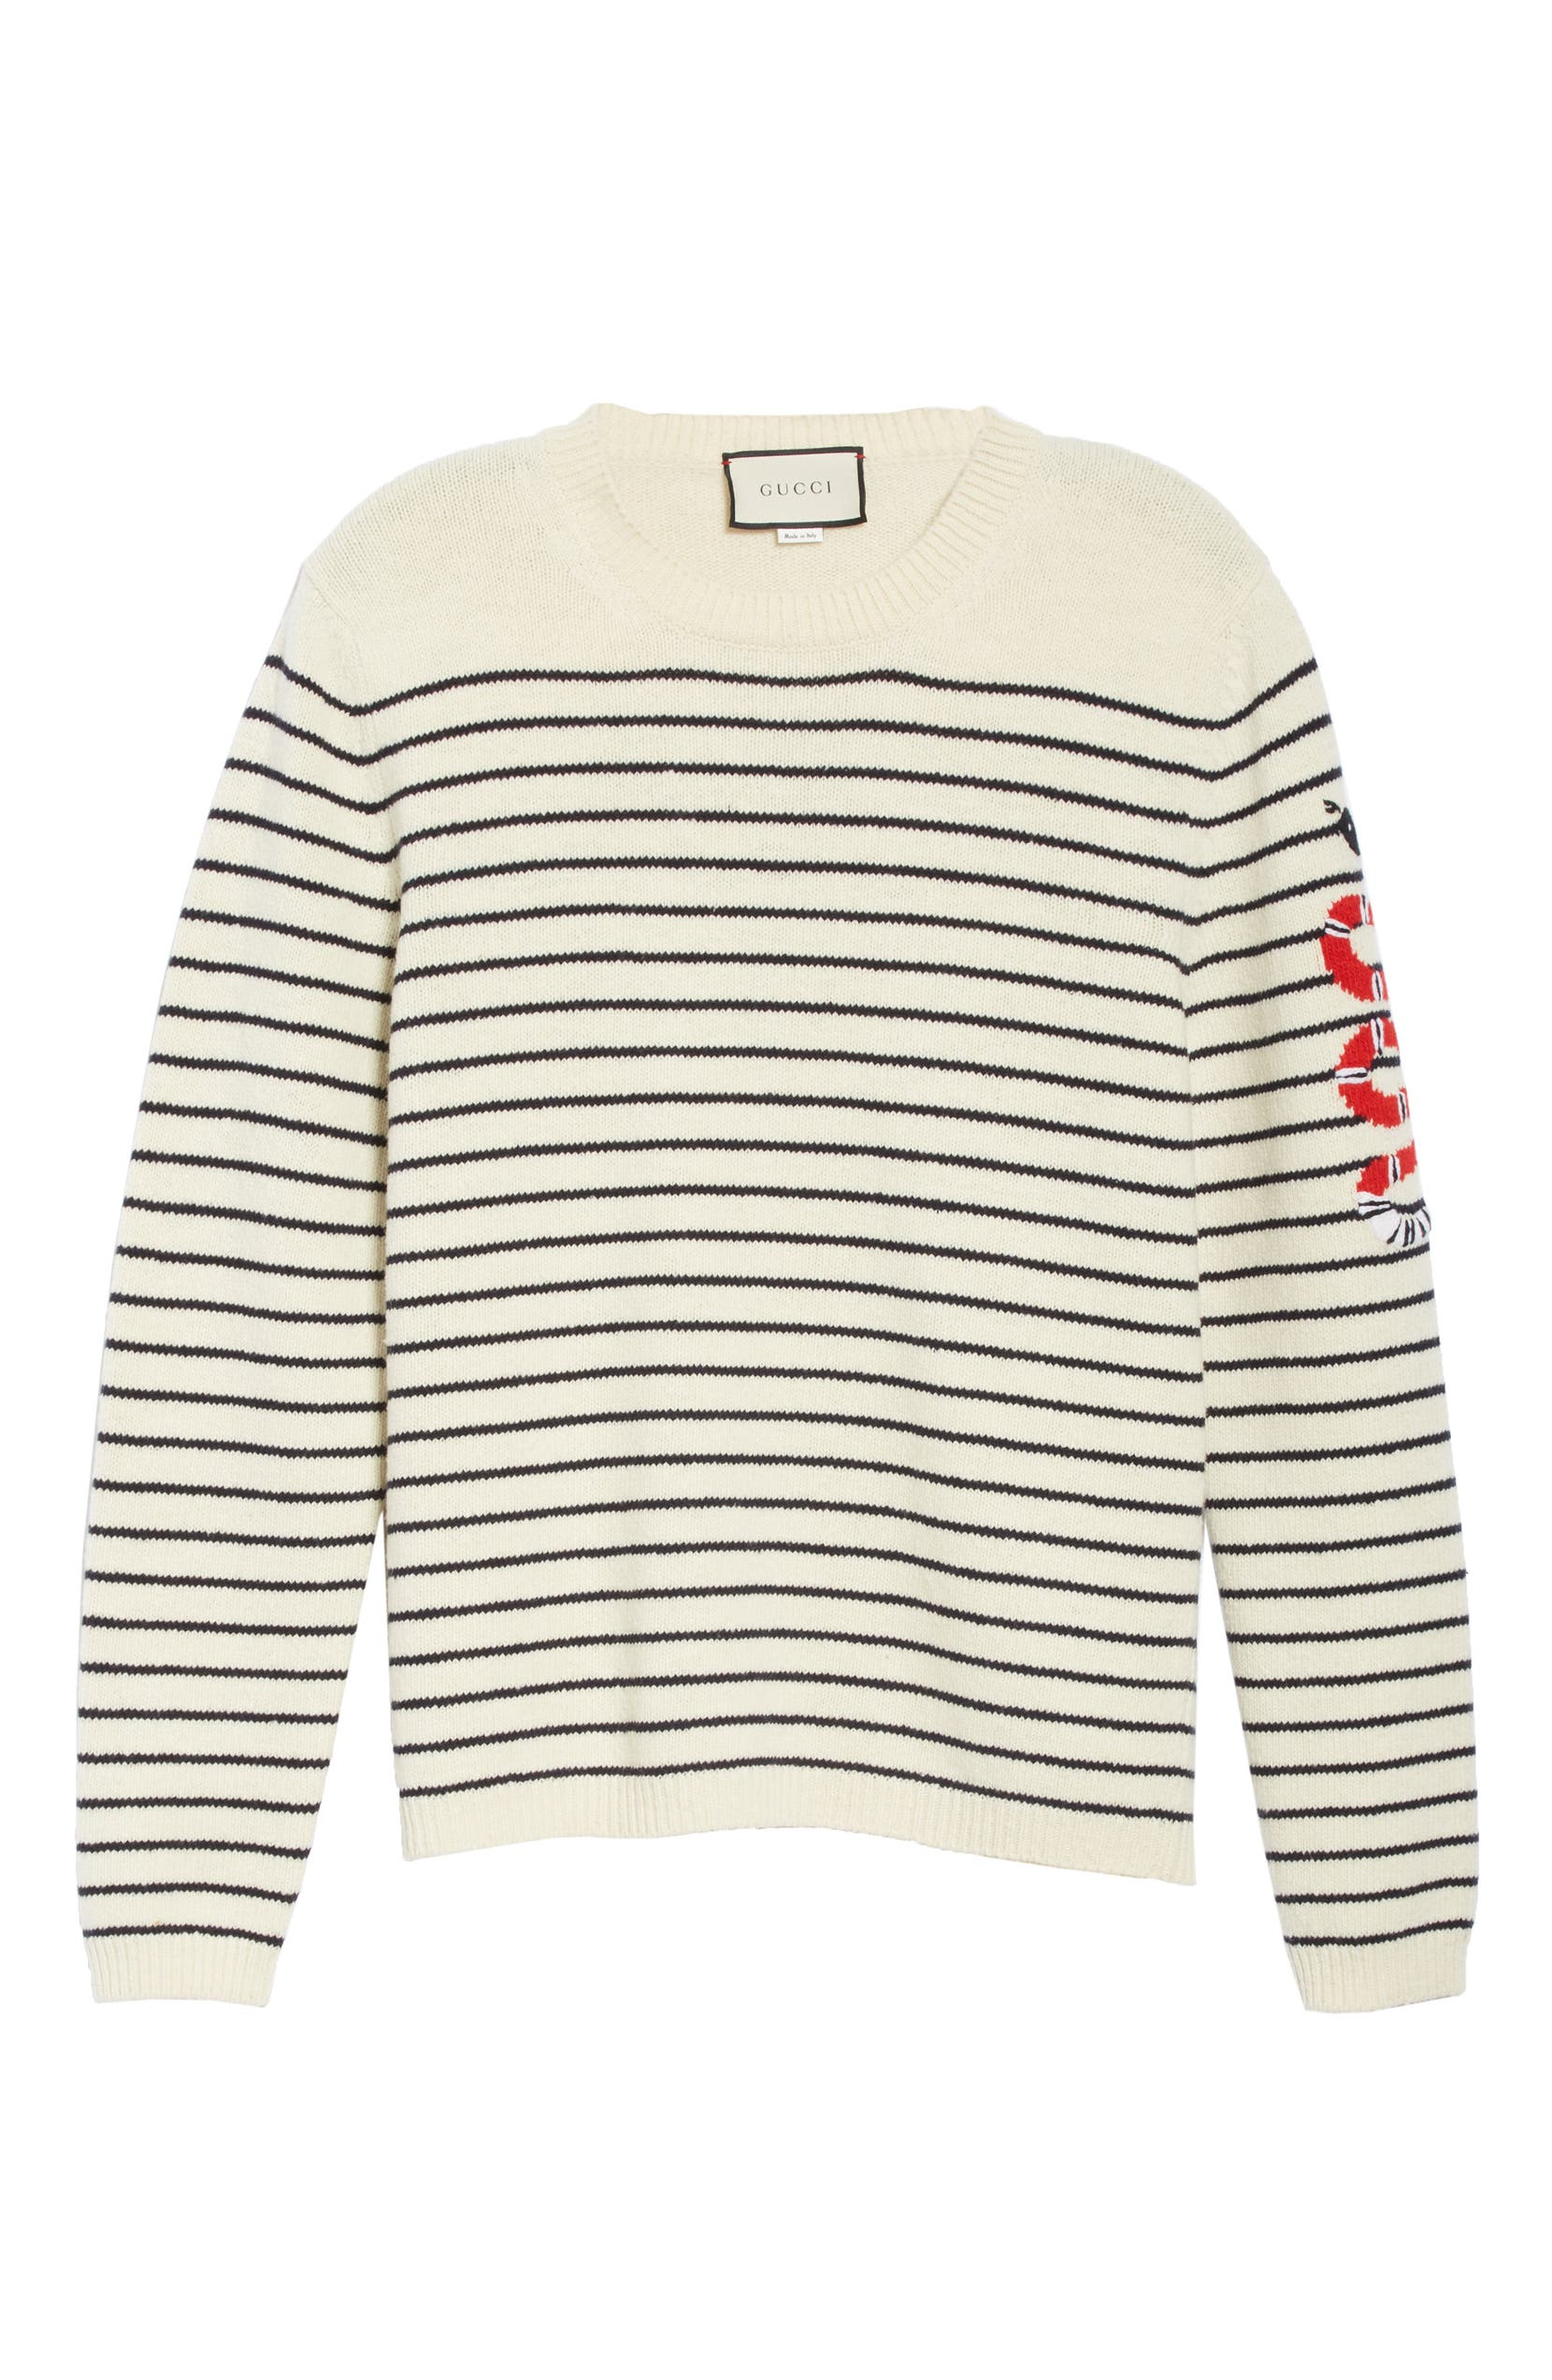 32a20669 Gucci Kingsnake Striped Wool Sweater | Nordstrom